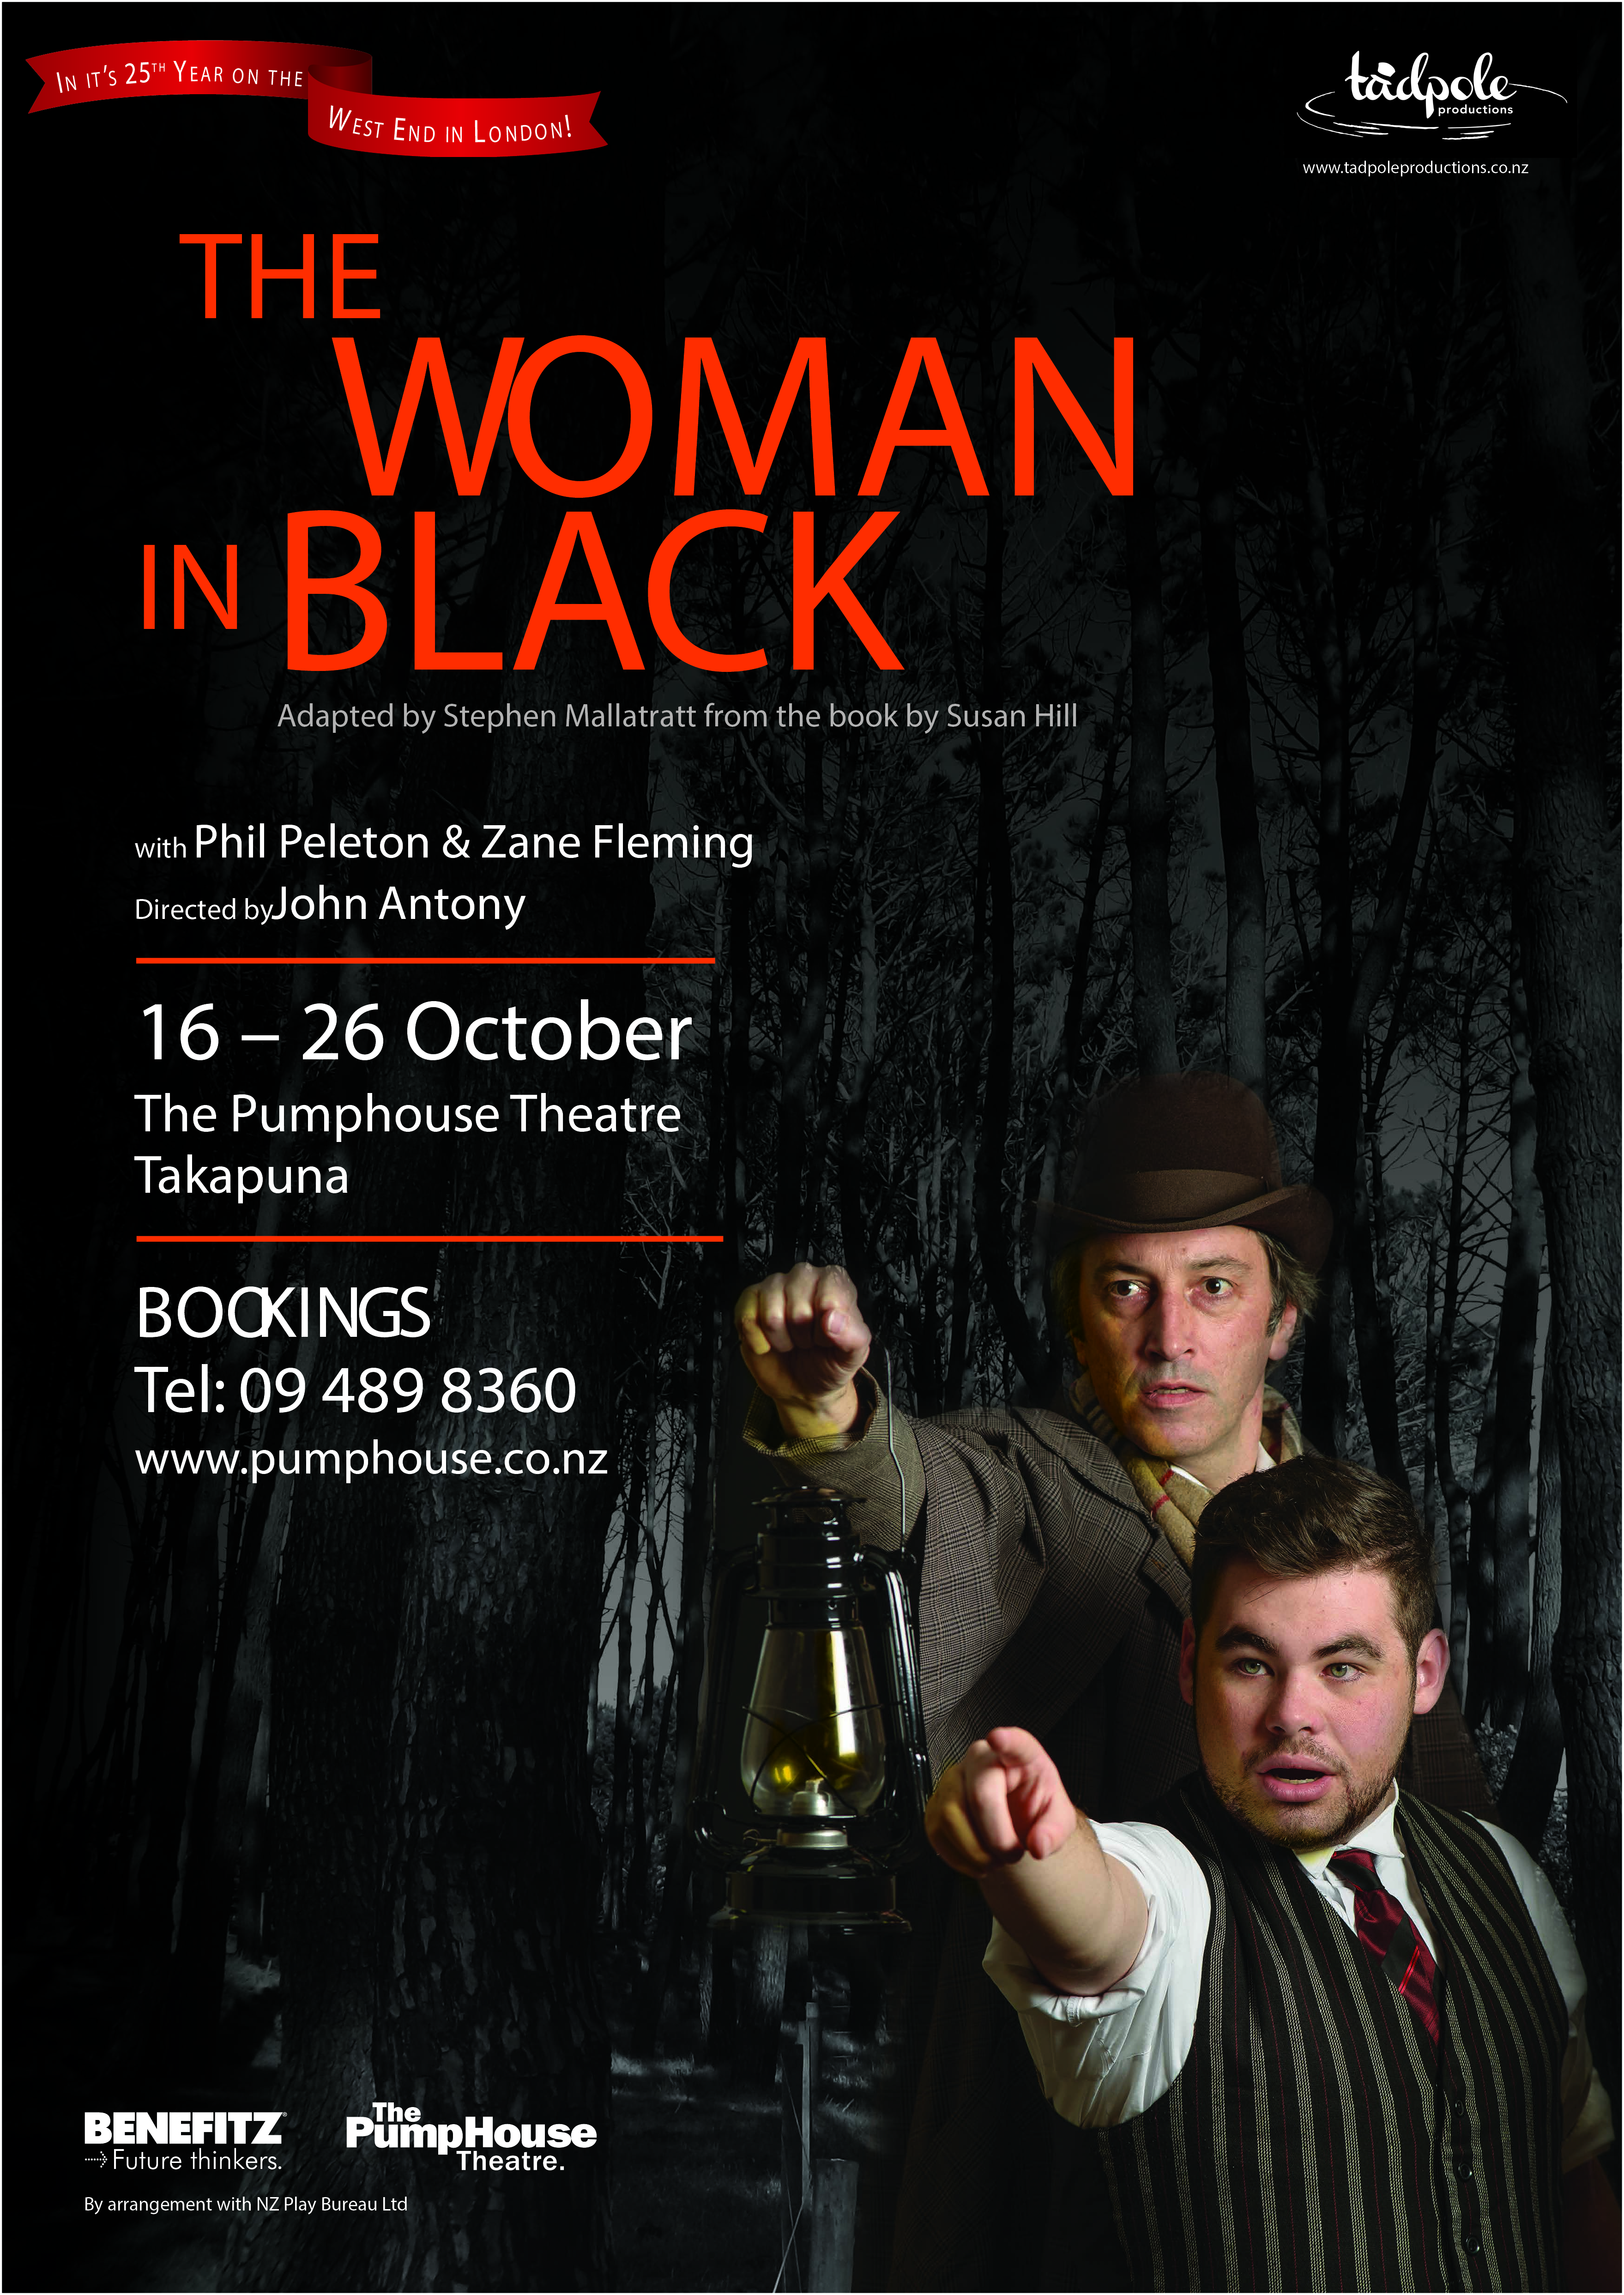 the woman in black | tadpole productions